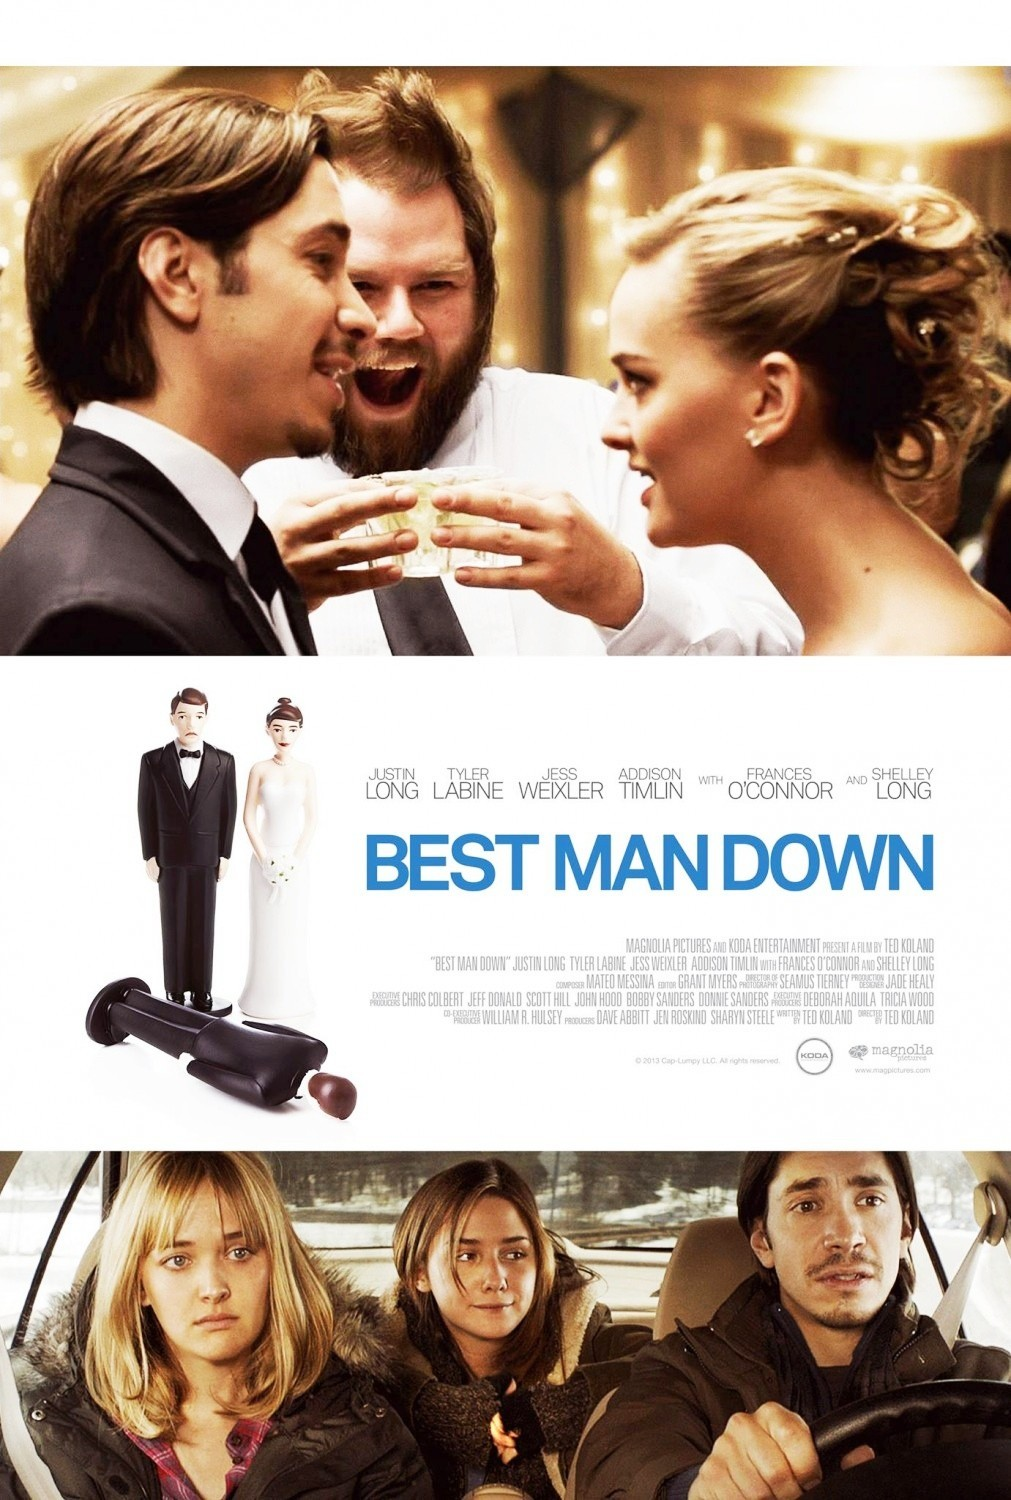 Best Man Down Review